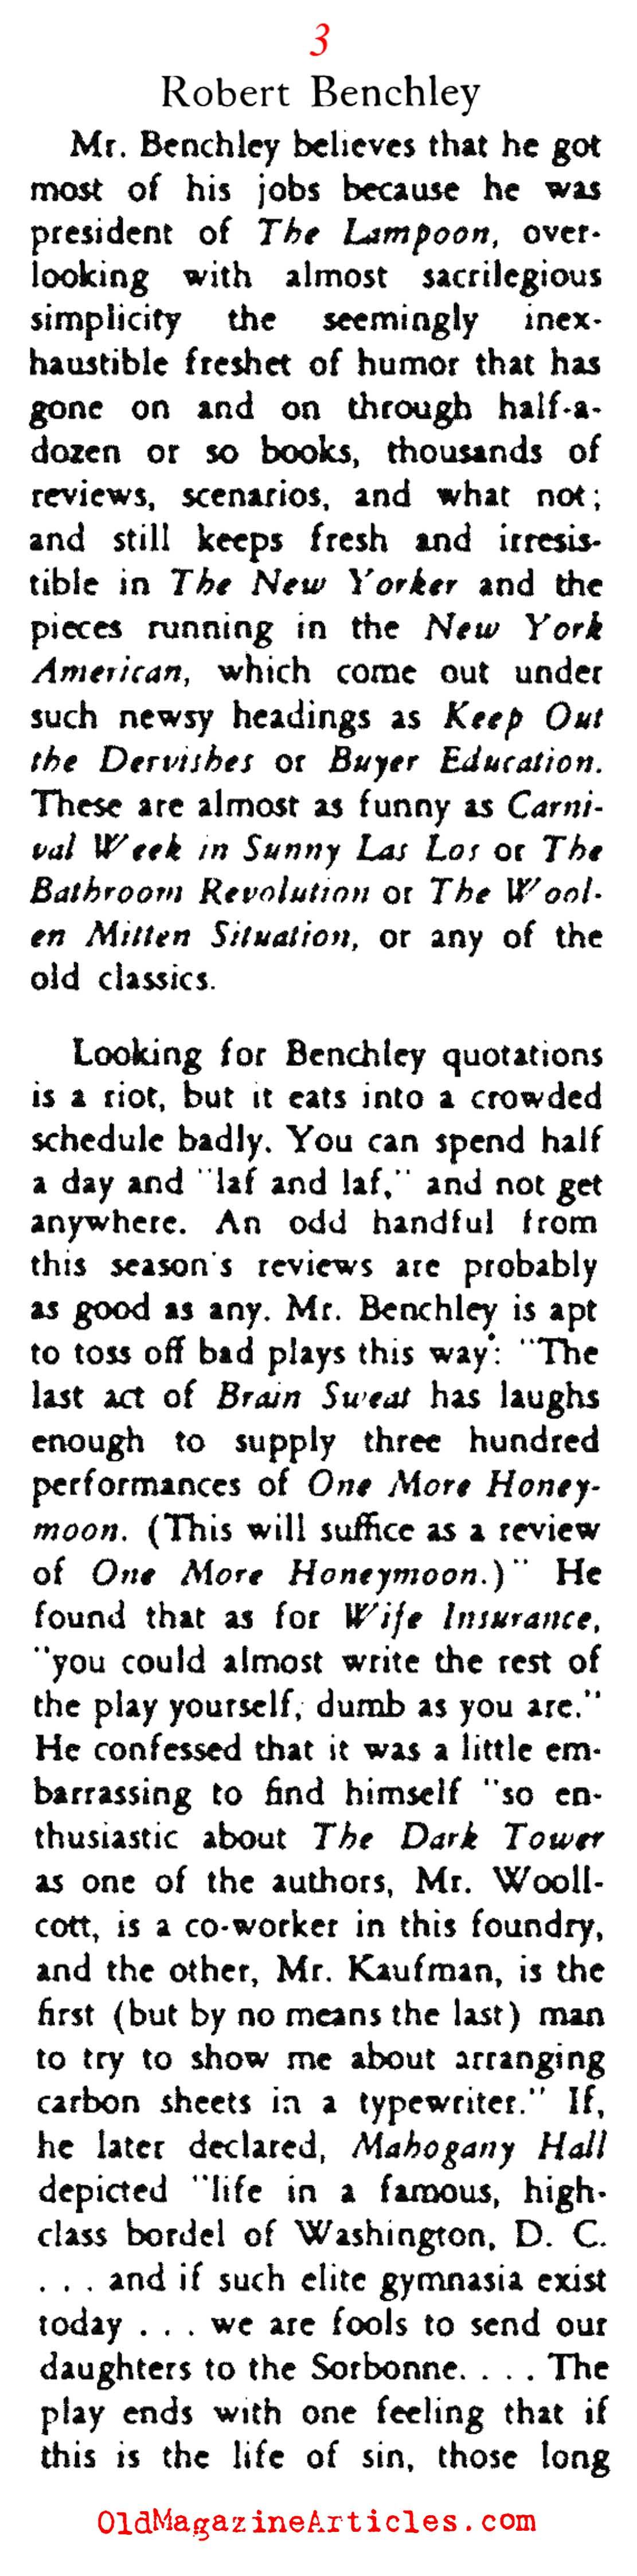 ... CRITIC ROBERT BENCHLEY - Article Preview - Old Magazine Articles